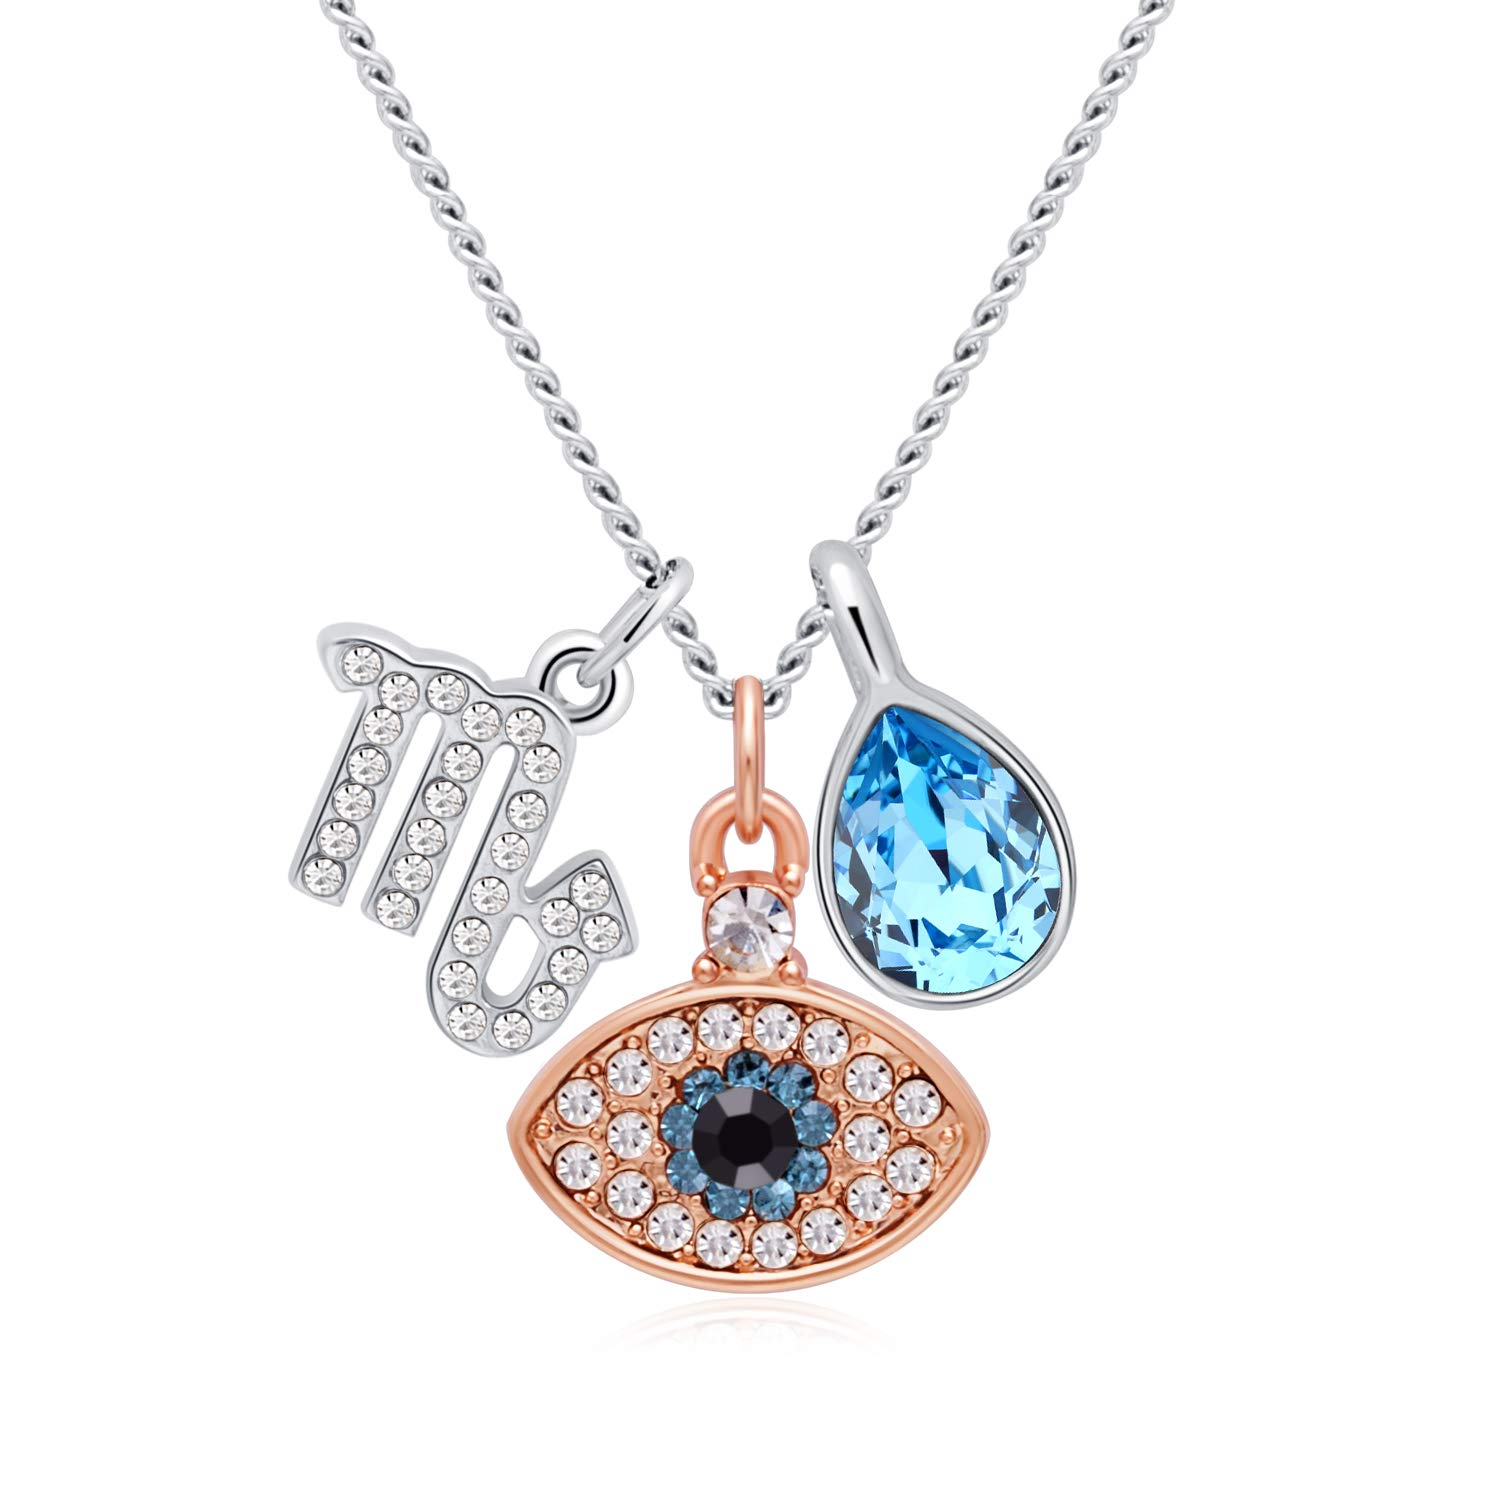 OLYSHE Necklace Zodiac Pendant Made with Swarovski 12 Constellations Jewelry for Women,Mother's Day,Birthday Girl, Anniversary Gift,With Gift Box.